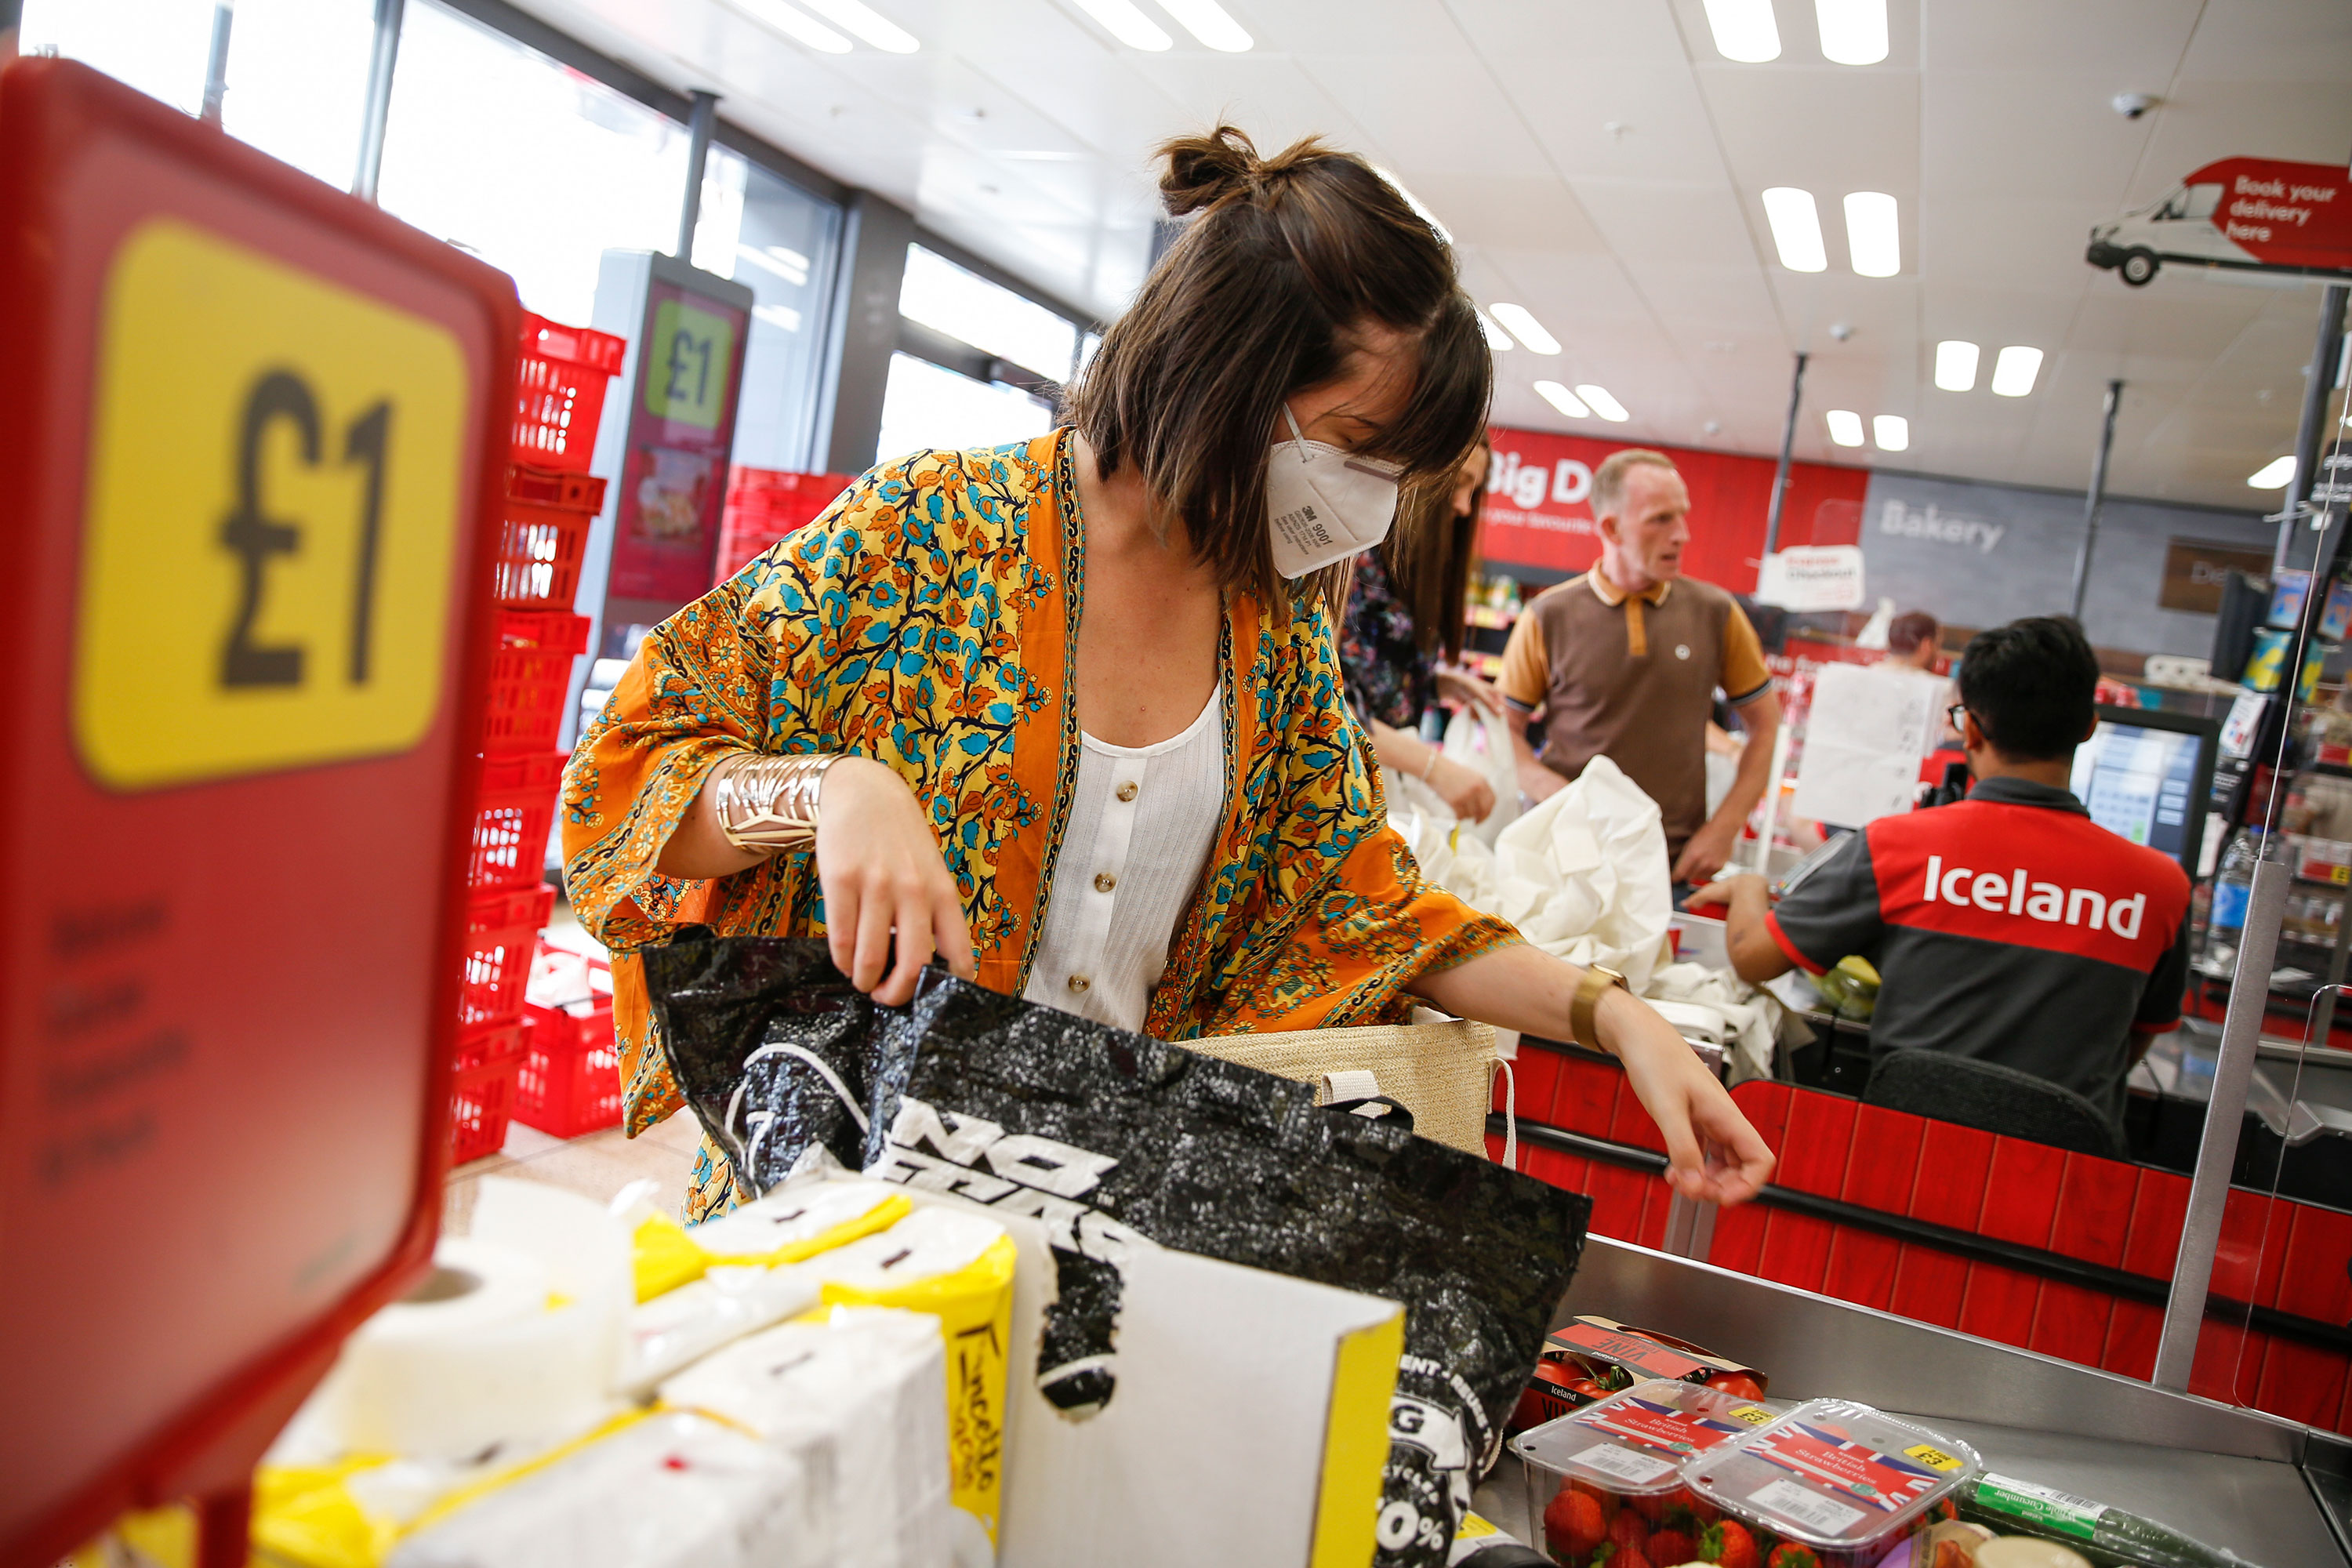 A customer wears a face mask while shopping at Iceland on July 11 in London, England.